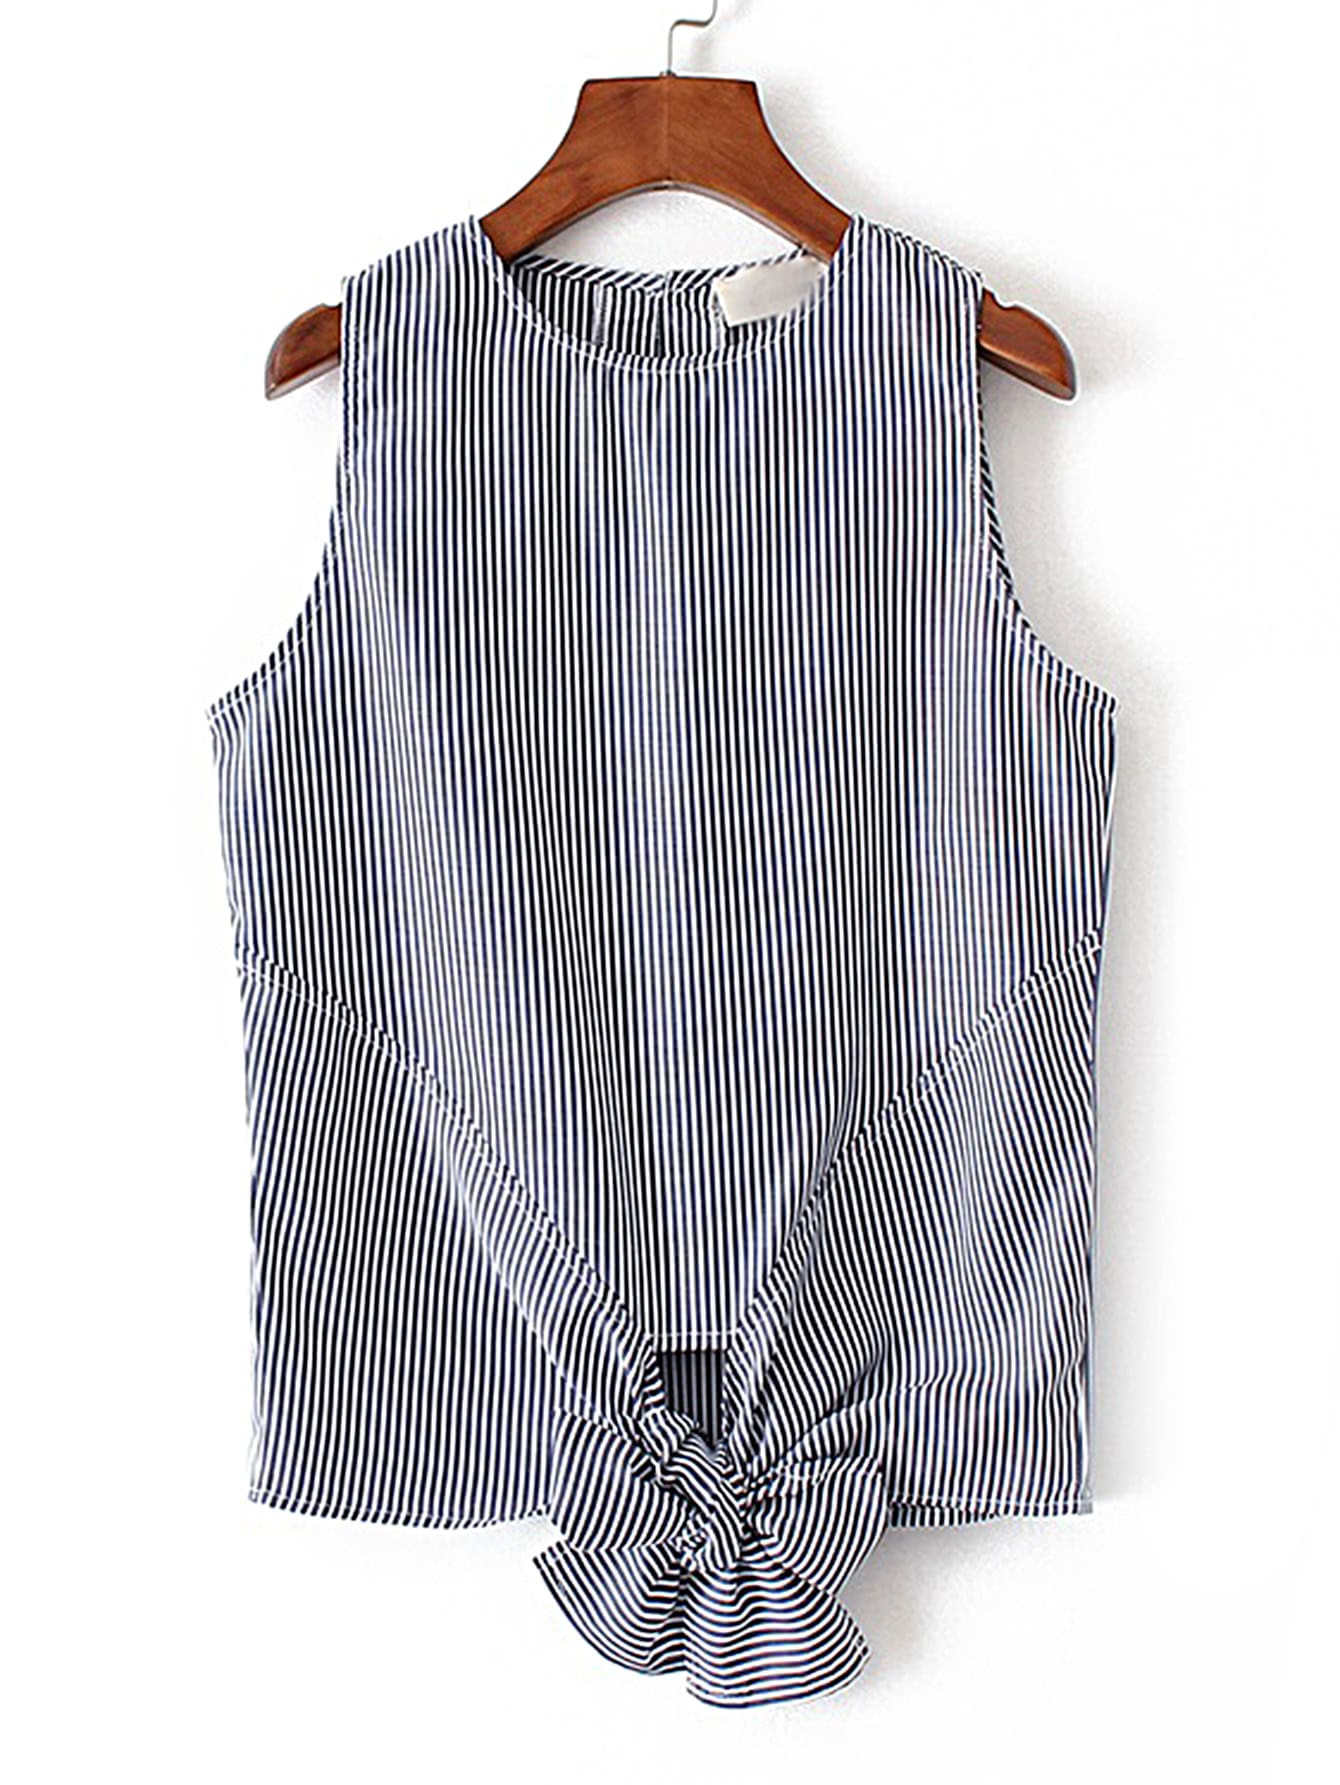 Vertical Striped Knot Front Sleeveless Top blouse170517204